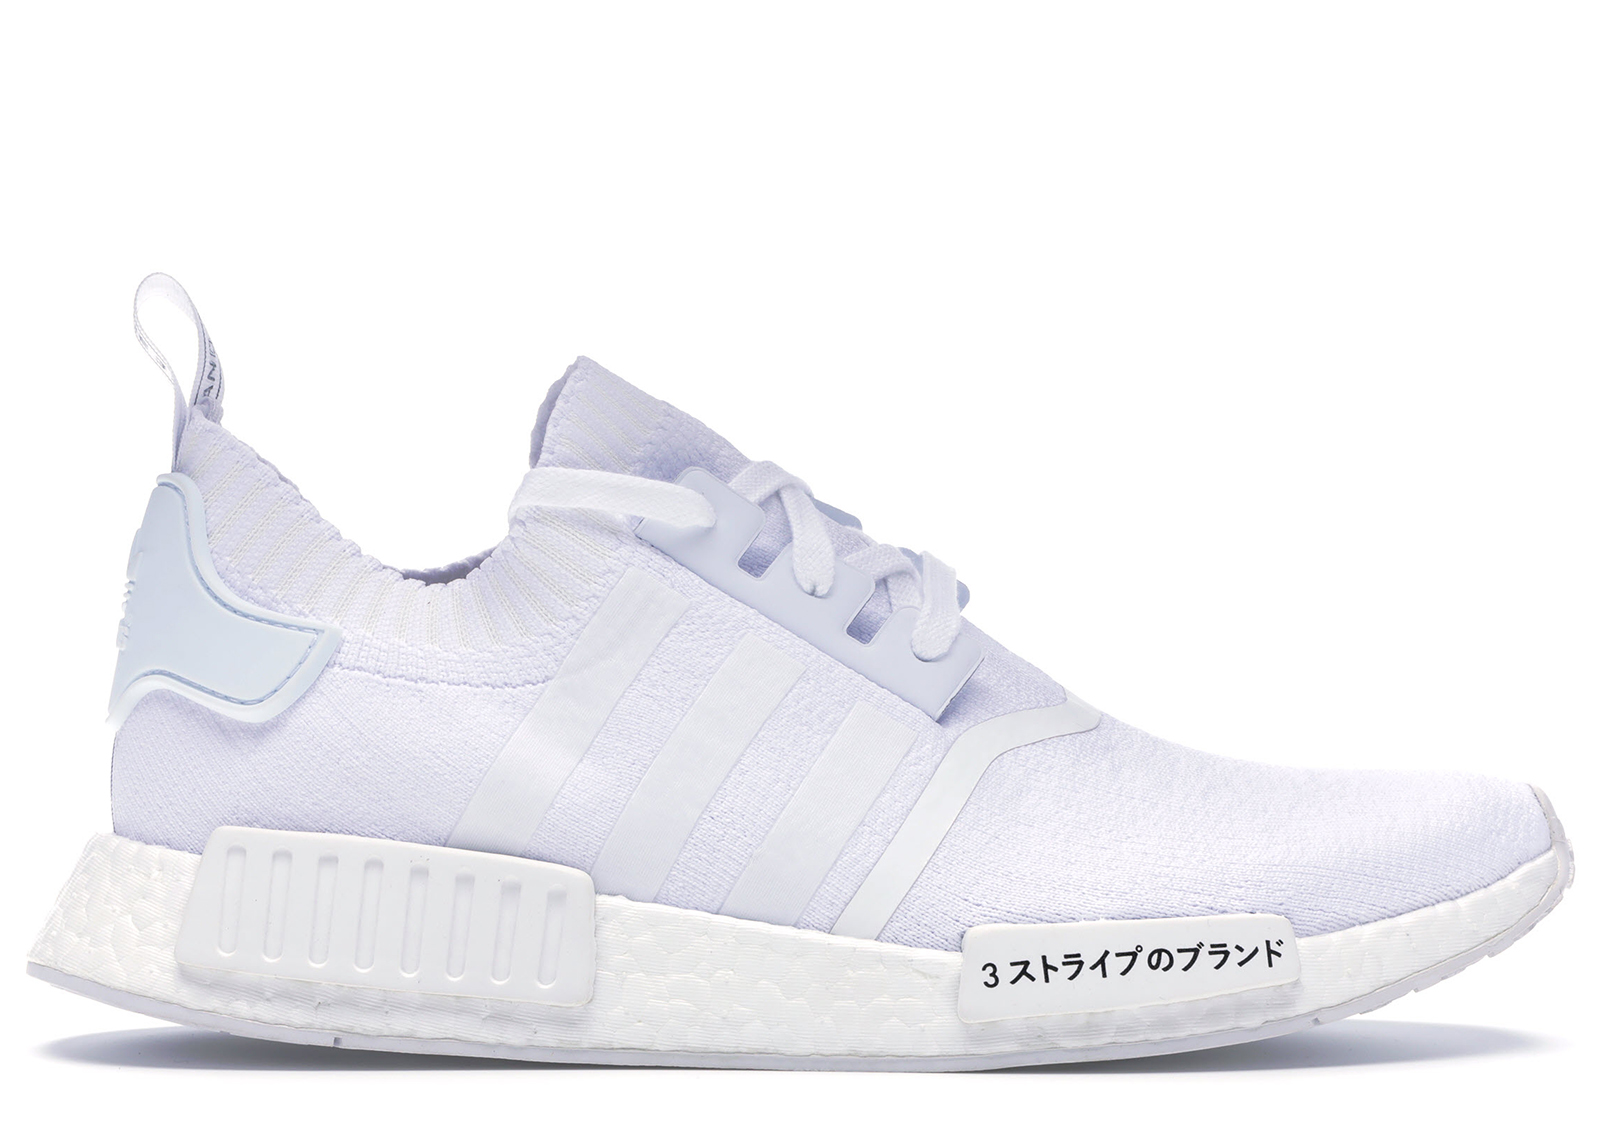 Adidas Boost Nmd All White